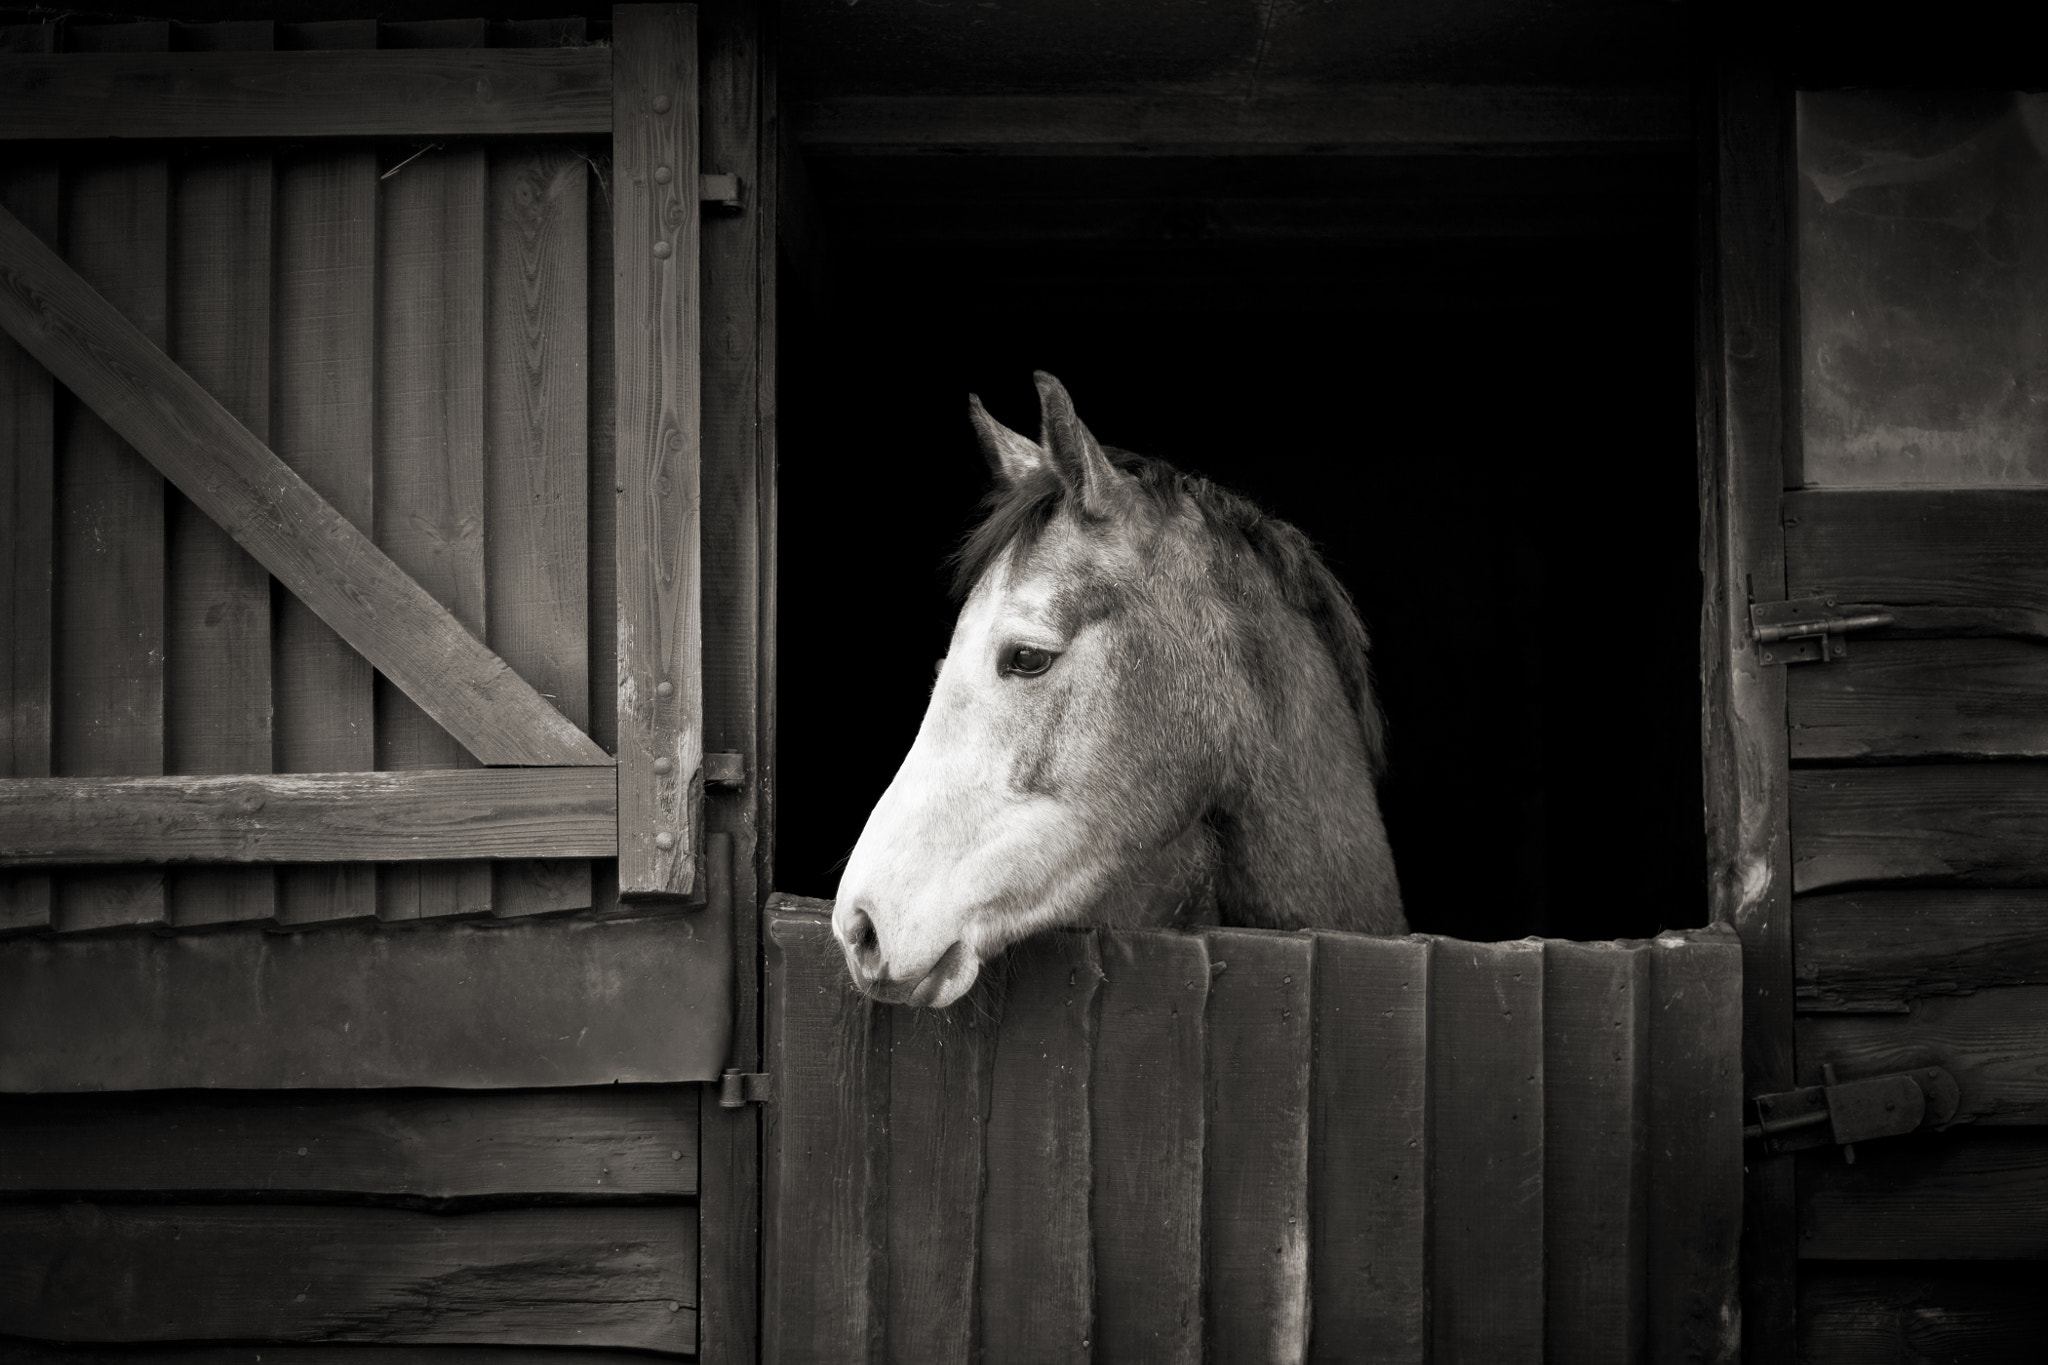 Photograph Listening at the stable door by Paul Indigo on 500px